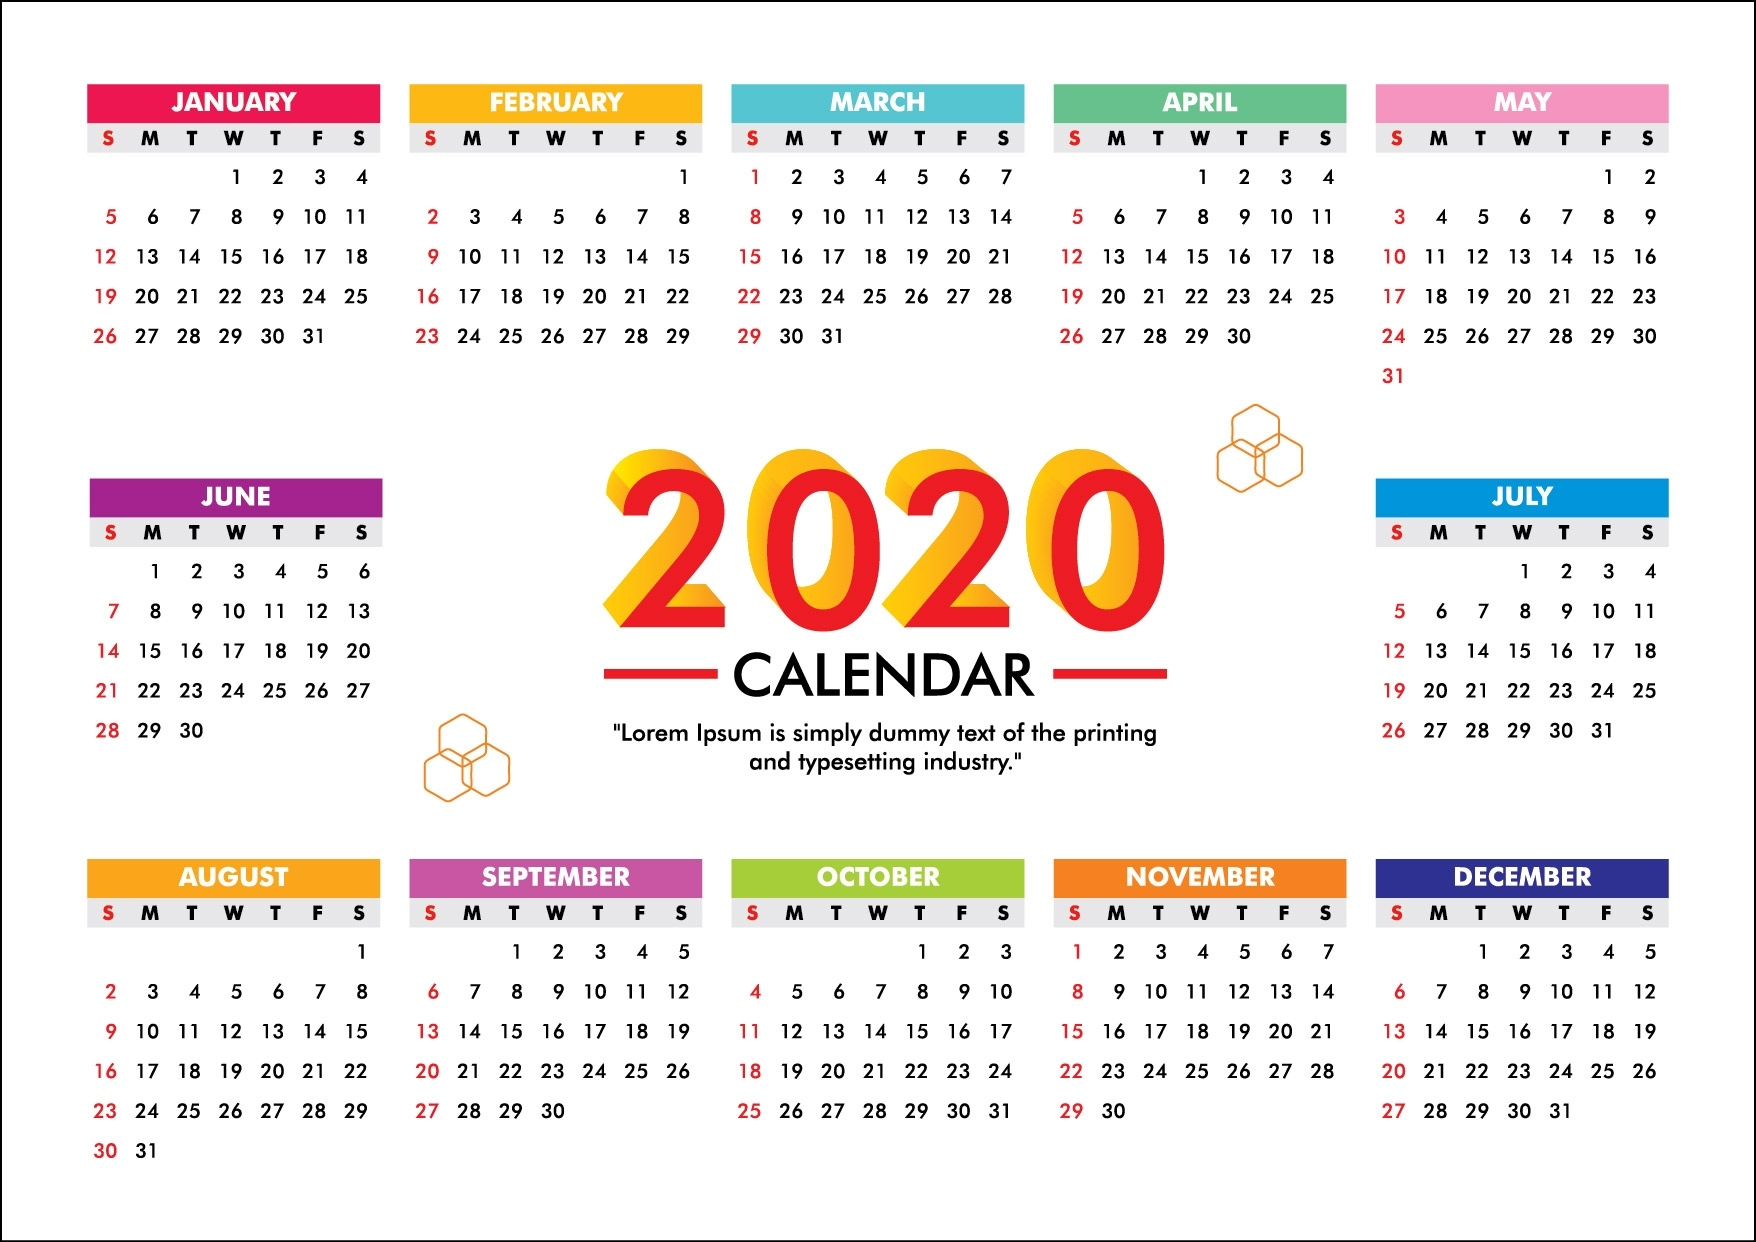 Calendar For 2020 Week Starts Sunday- Free Vector - Graphics Pic 2020 Calendar Free Vector